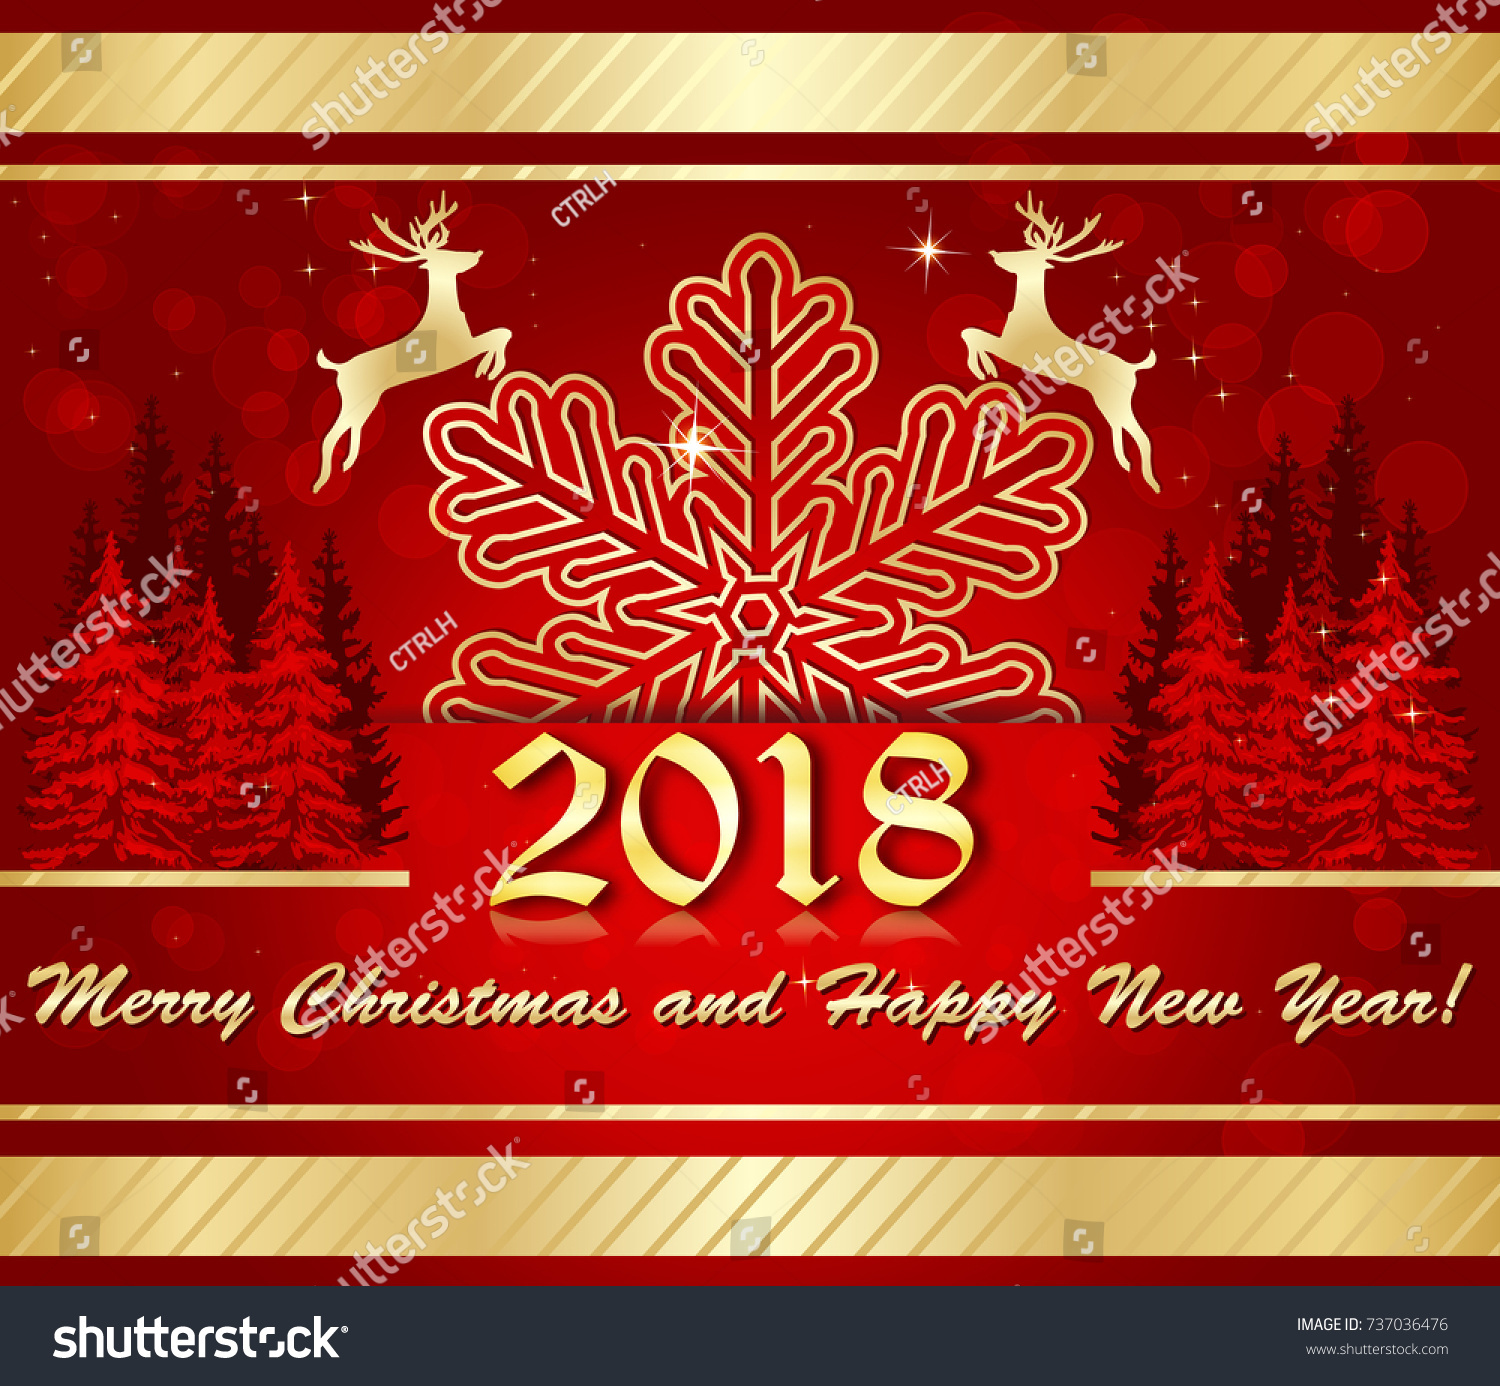 Corporate greeting card christmas new year stock illustration corporate greeting card for christmas and new year contains an elegant snowflake reindeer shape kristyandbryce Image collections